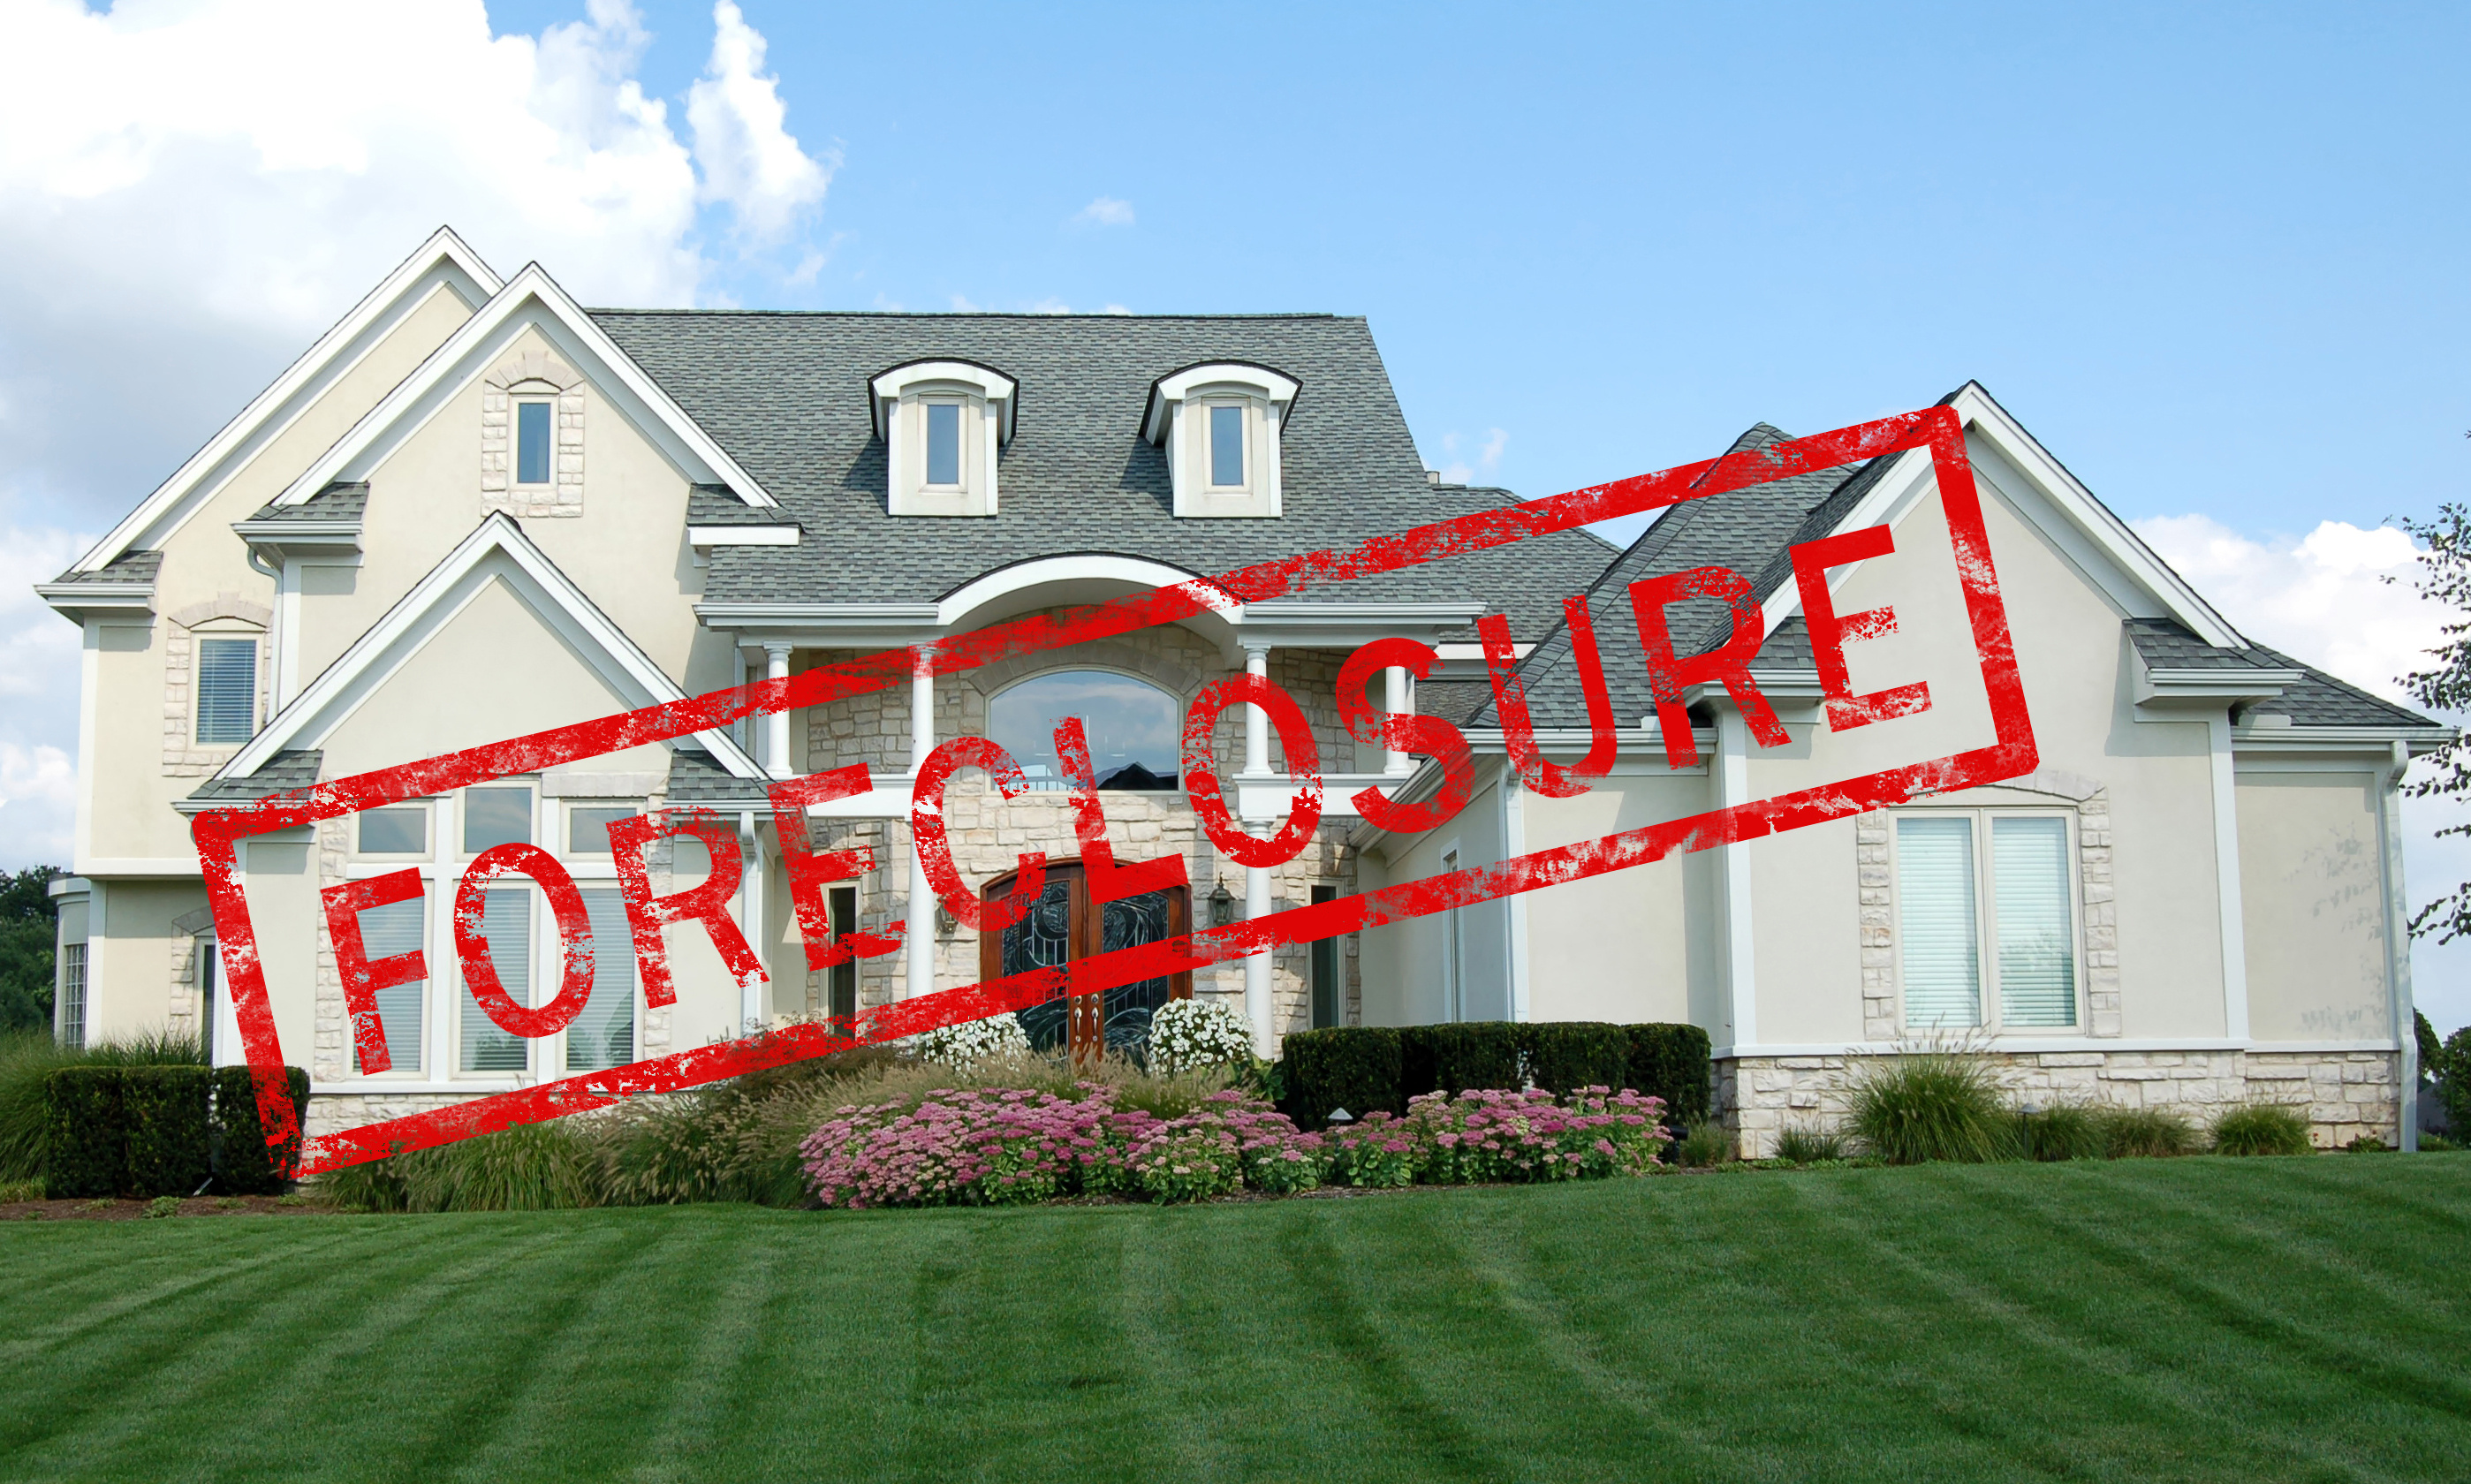 Call Appraisal Services of Brandon, Inc . to discuss appraisals pertaining to Hillsborough foreclosures